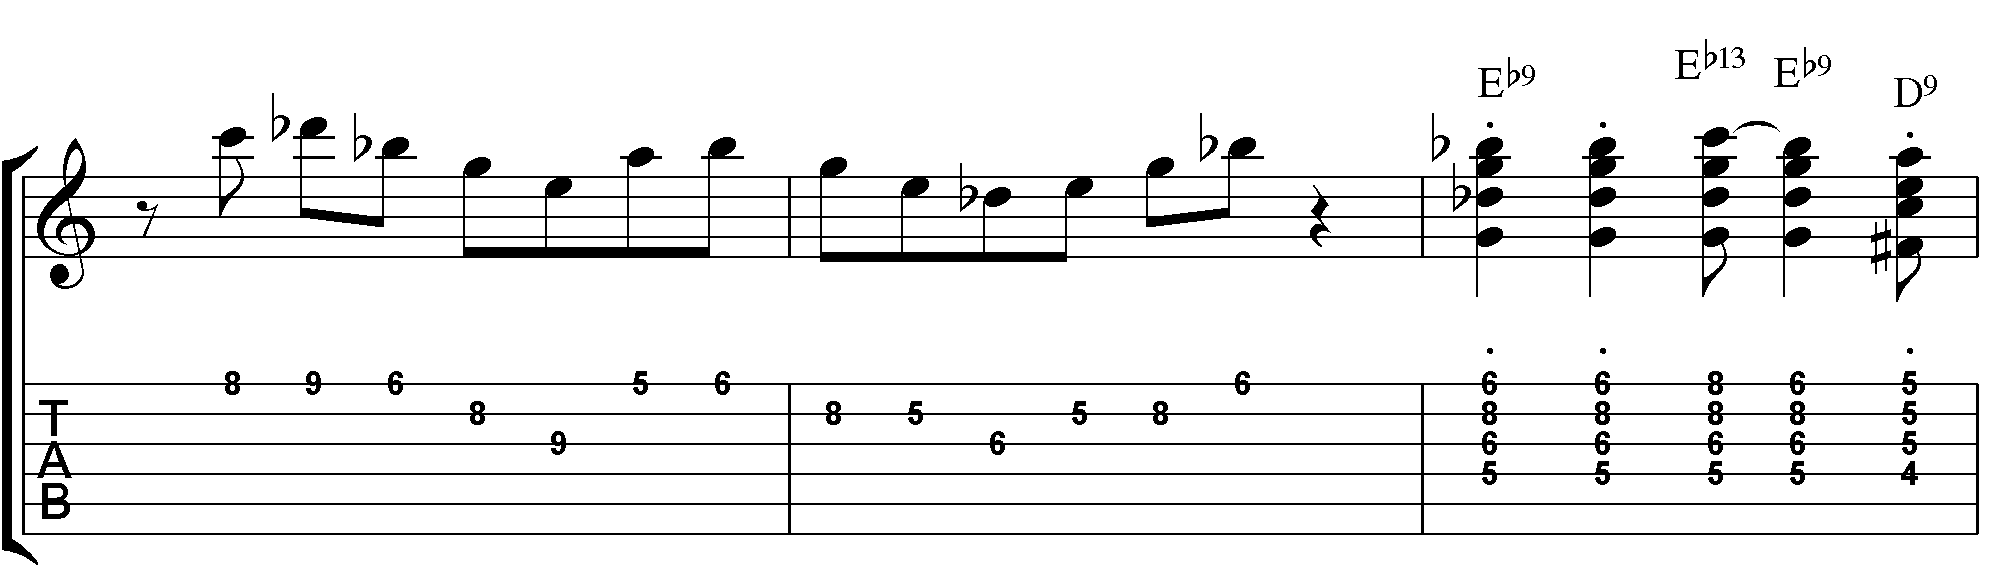 blues riffs tab